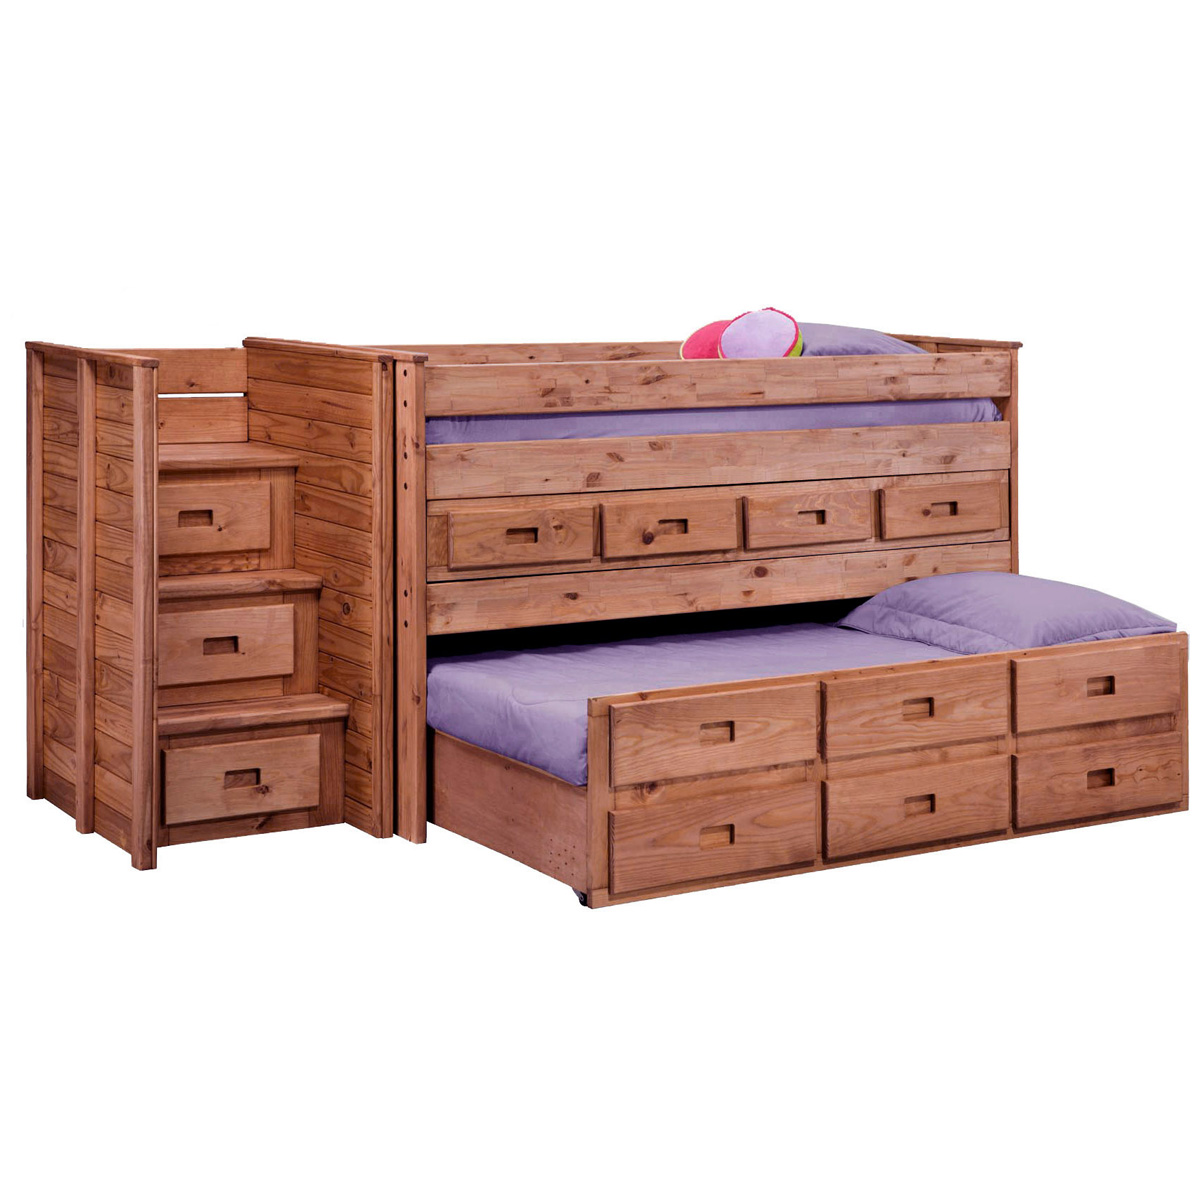 Twin loft bed staircase drawers trundle mahogany for Loft bed with trundle